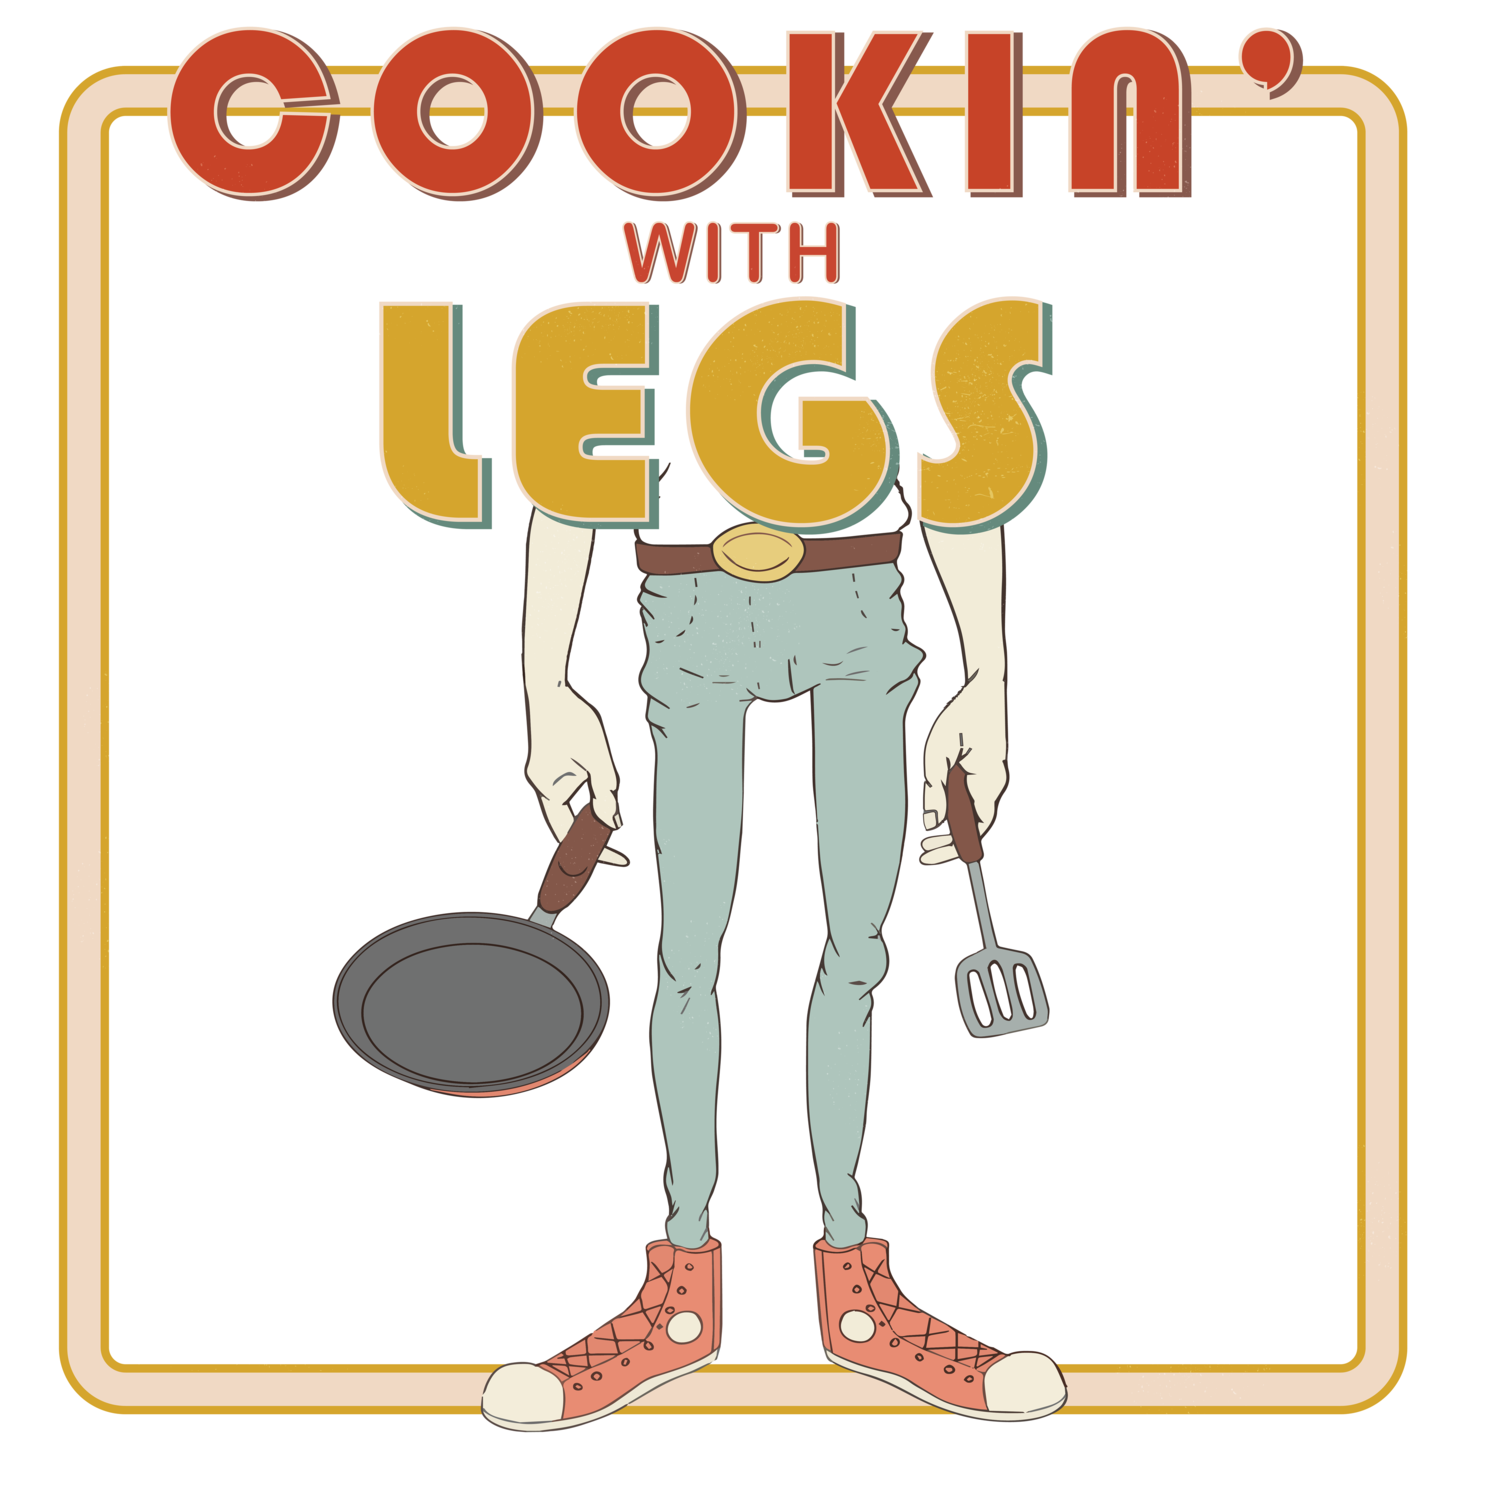 Cookin' With Legs